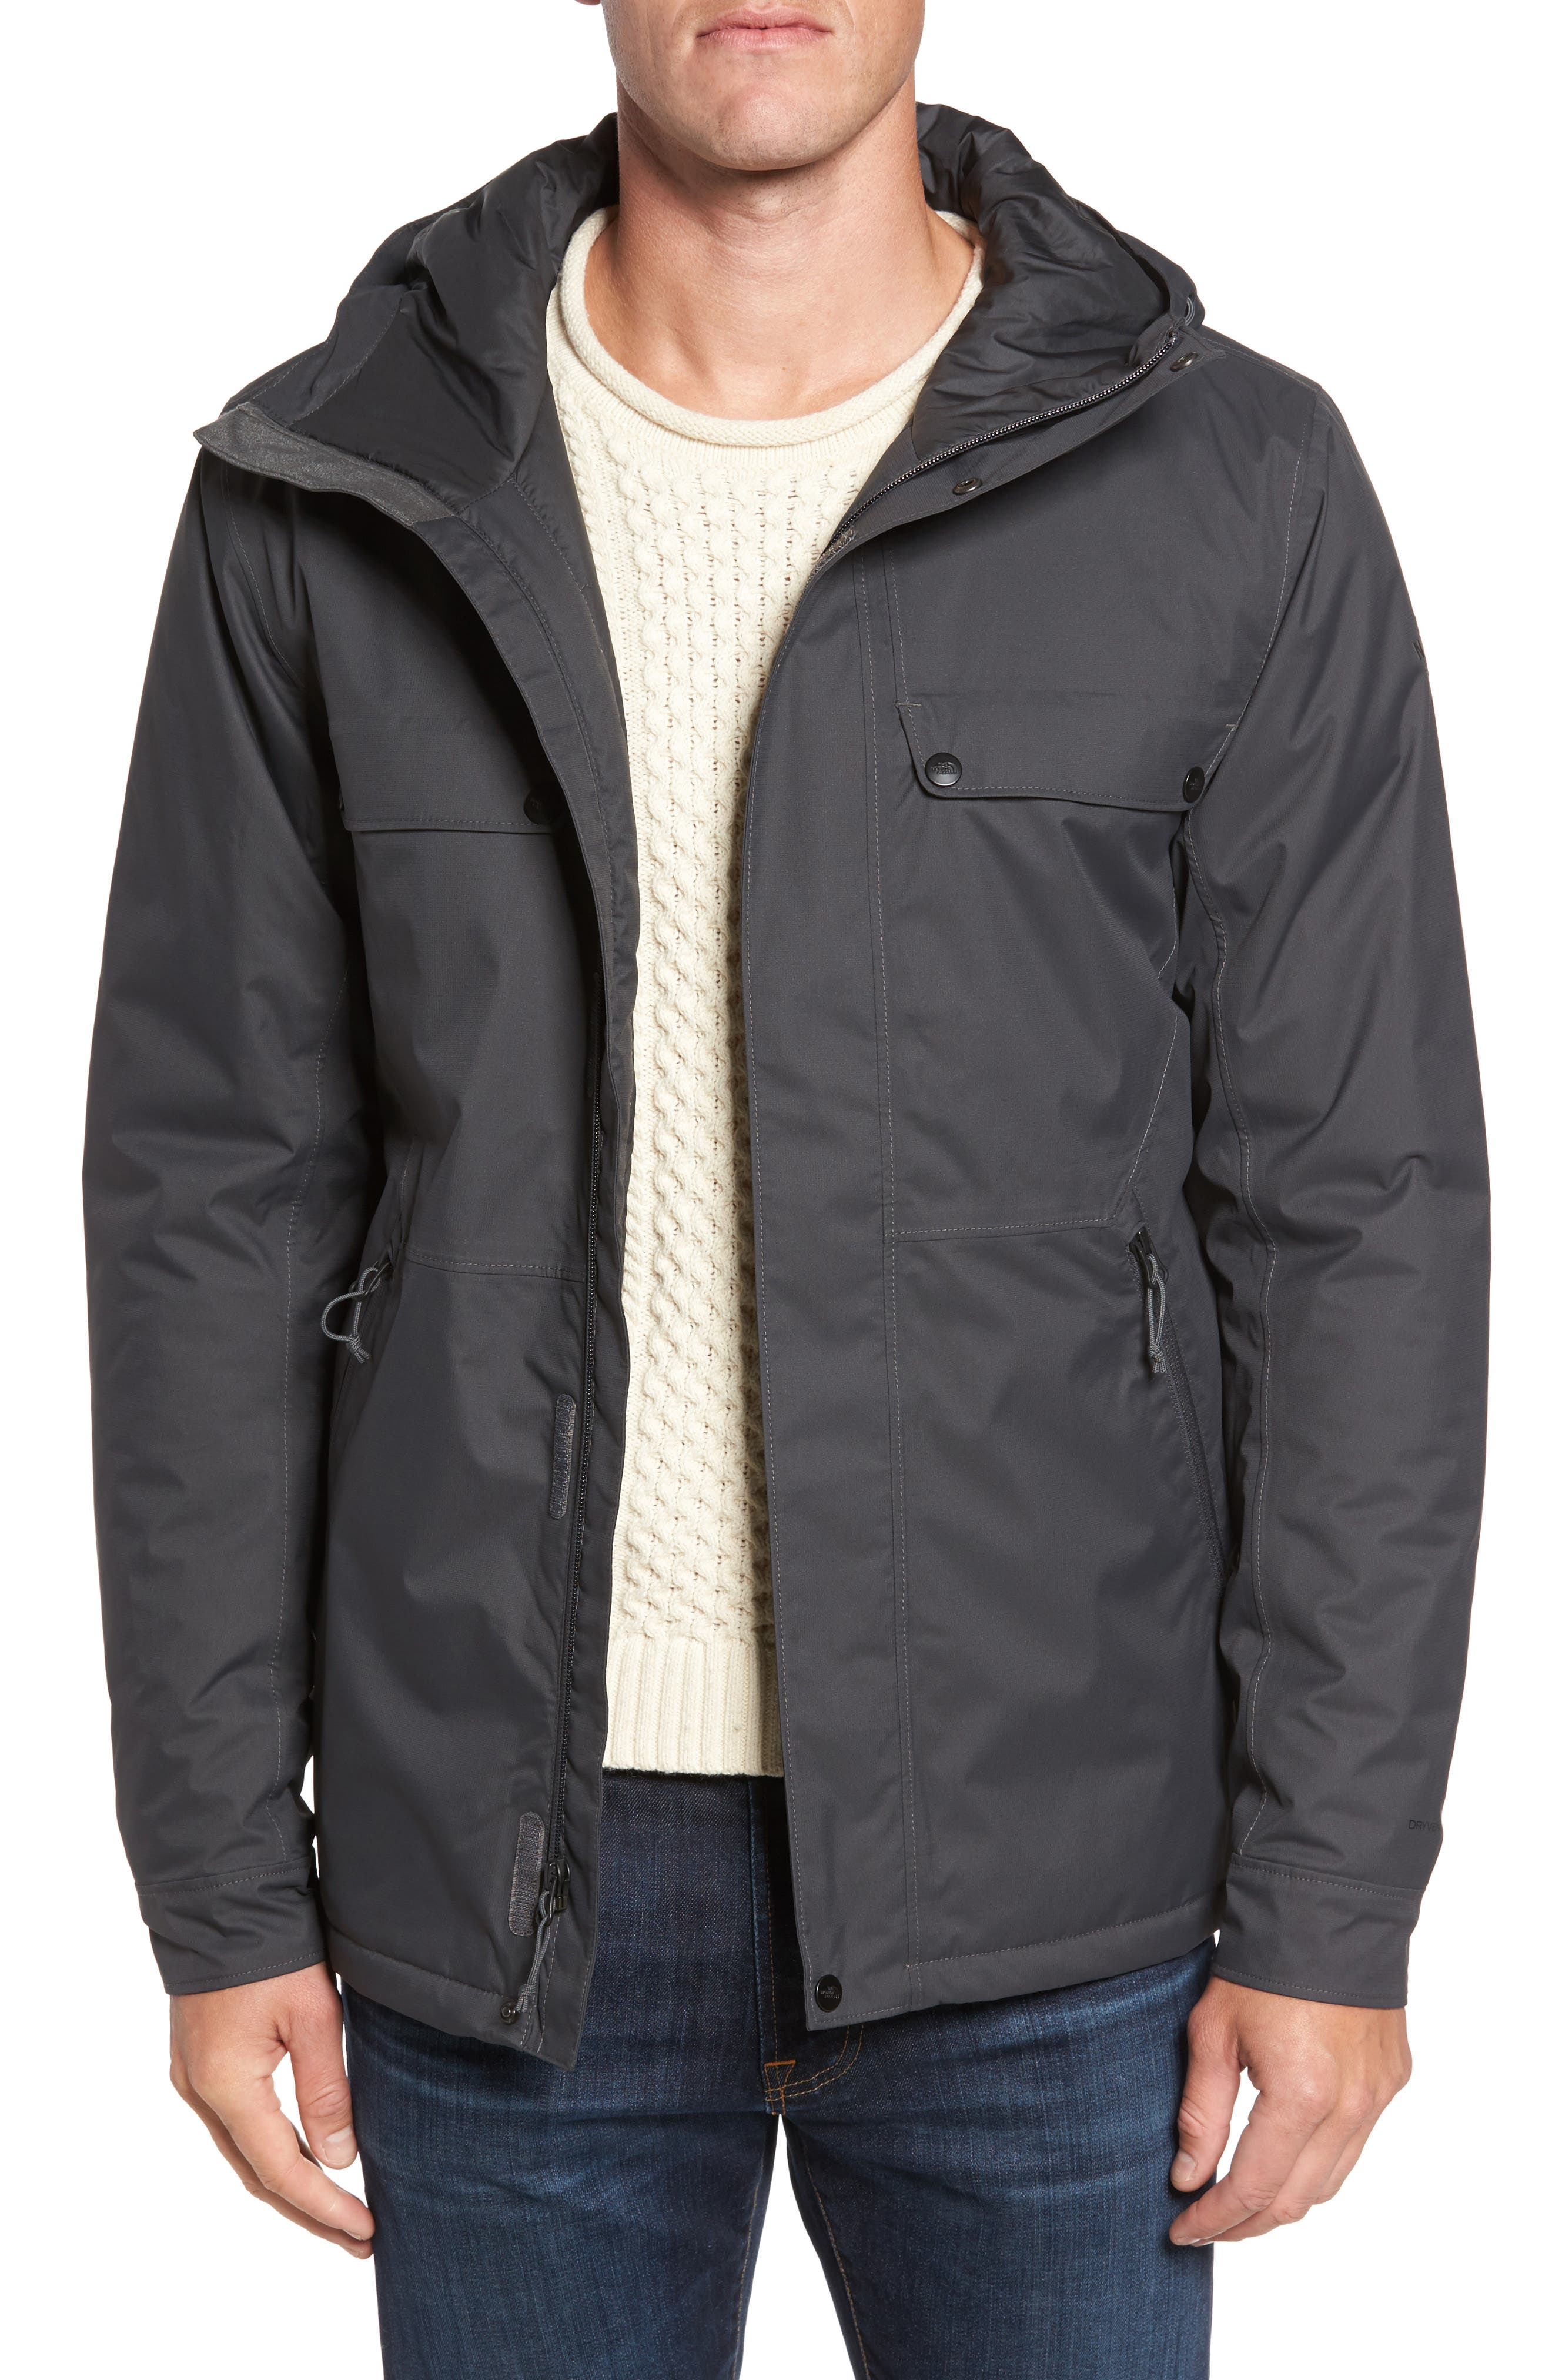 Alternate Image 1 Selected - The North Face Jenison Insulated Waterproof Jacket